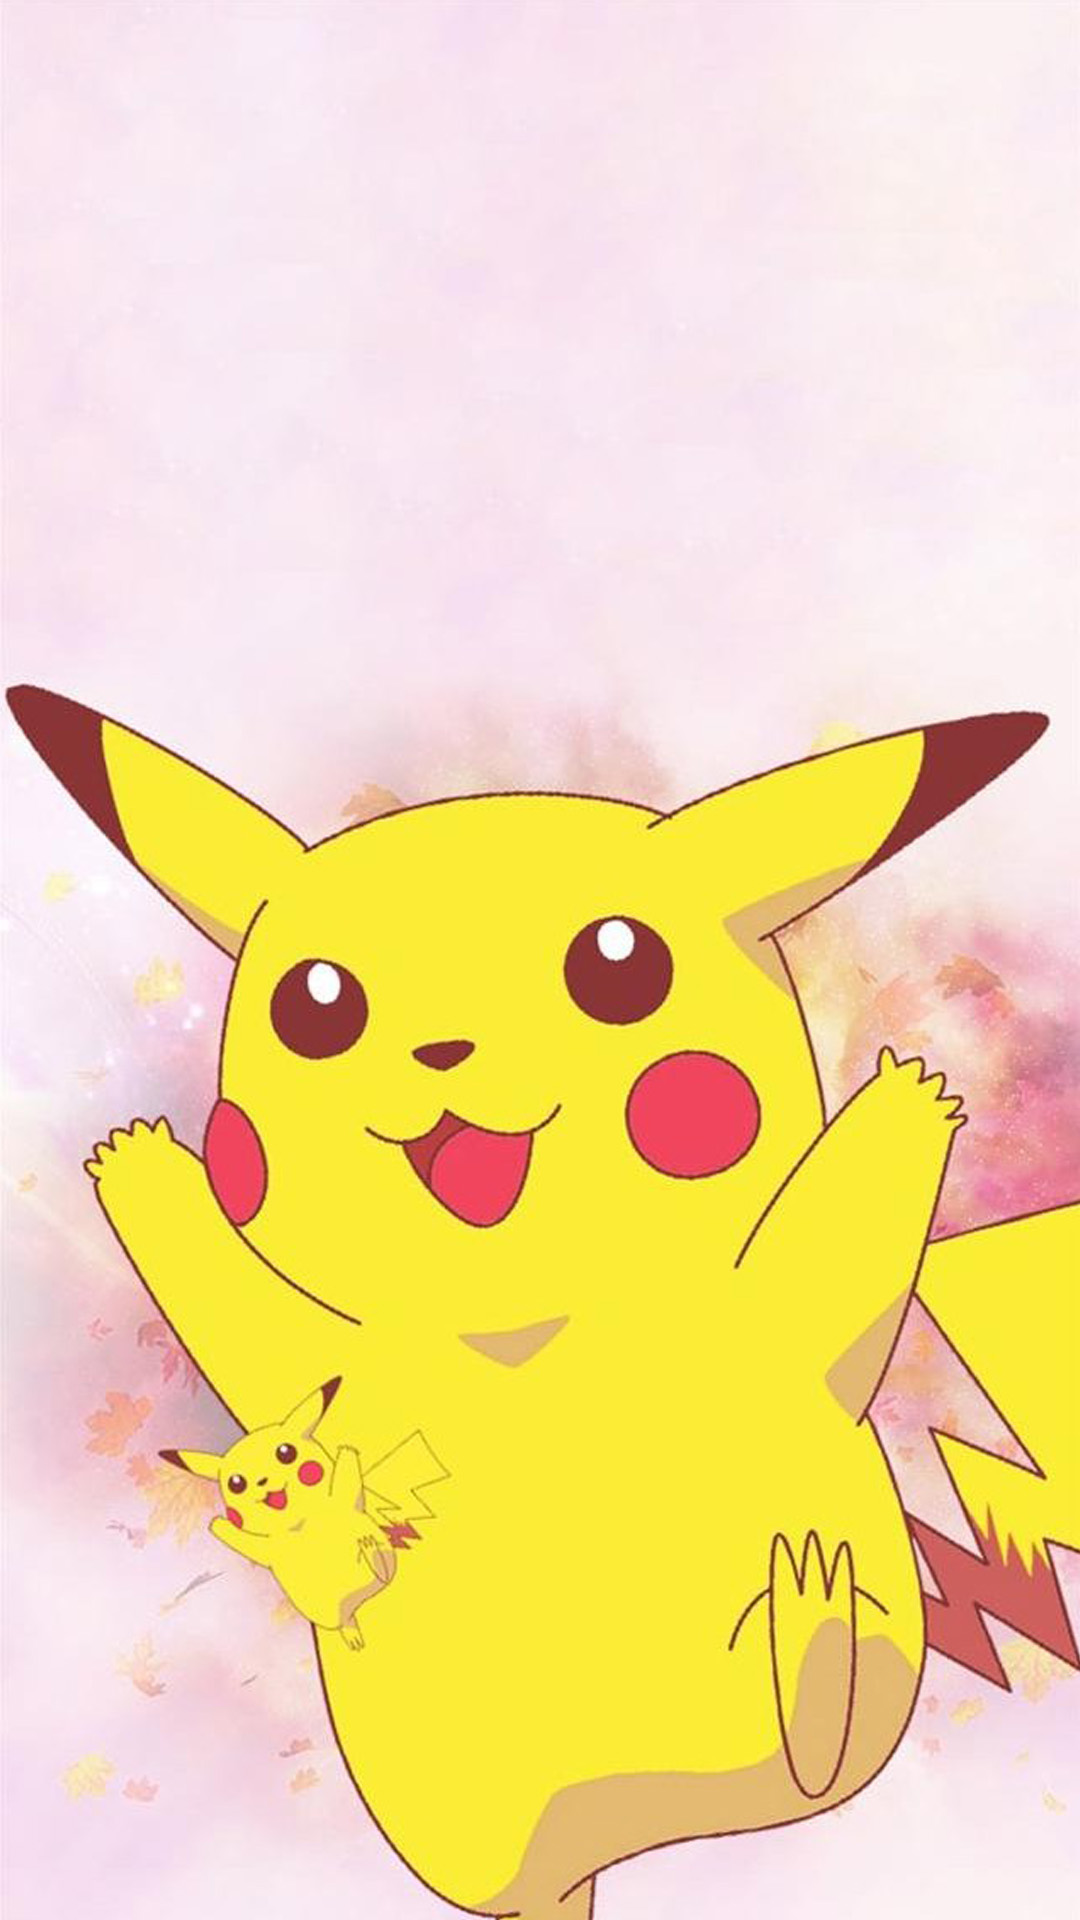 Pikachu Android Wallpaper Android Hd Wallpapers